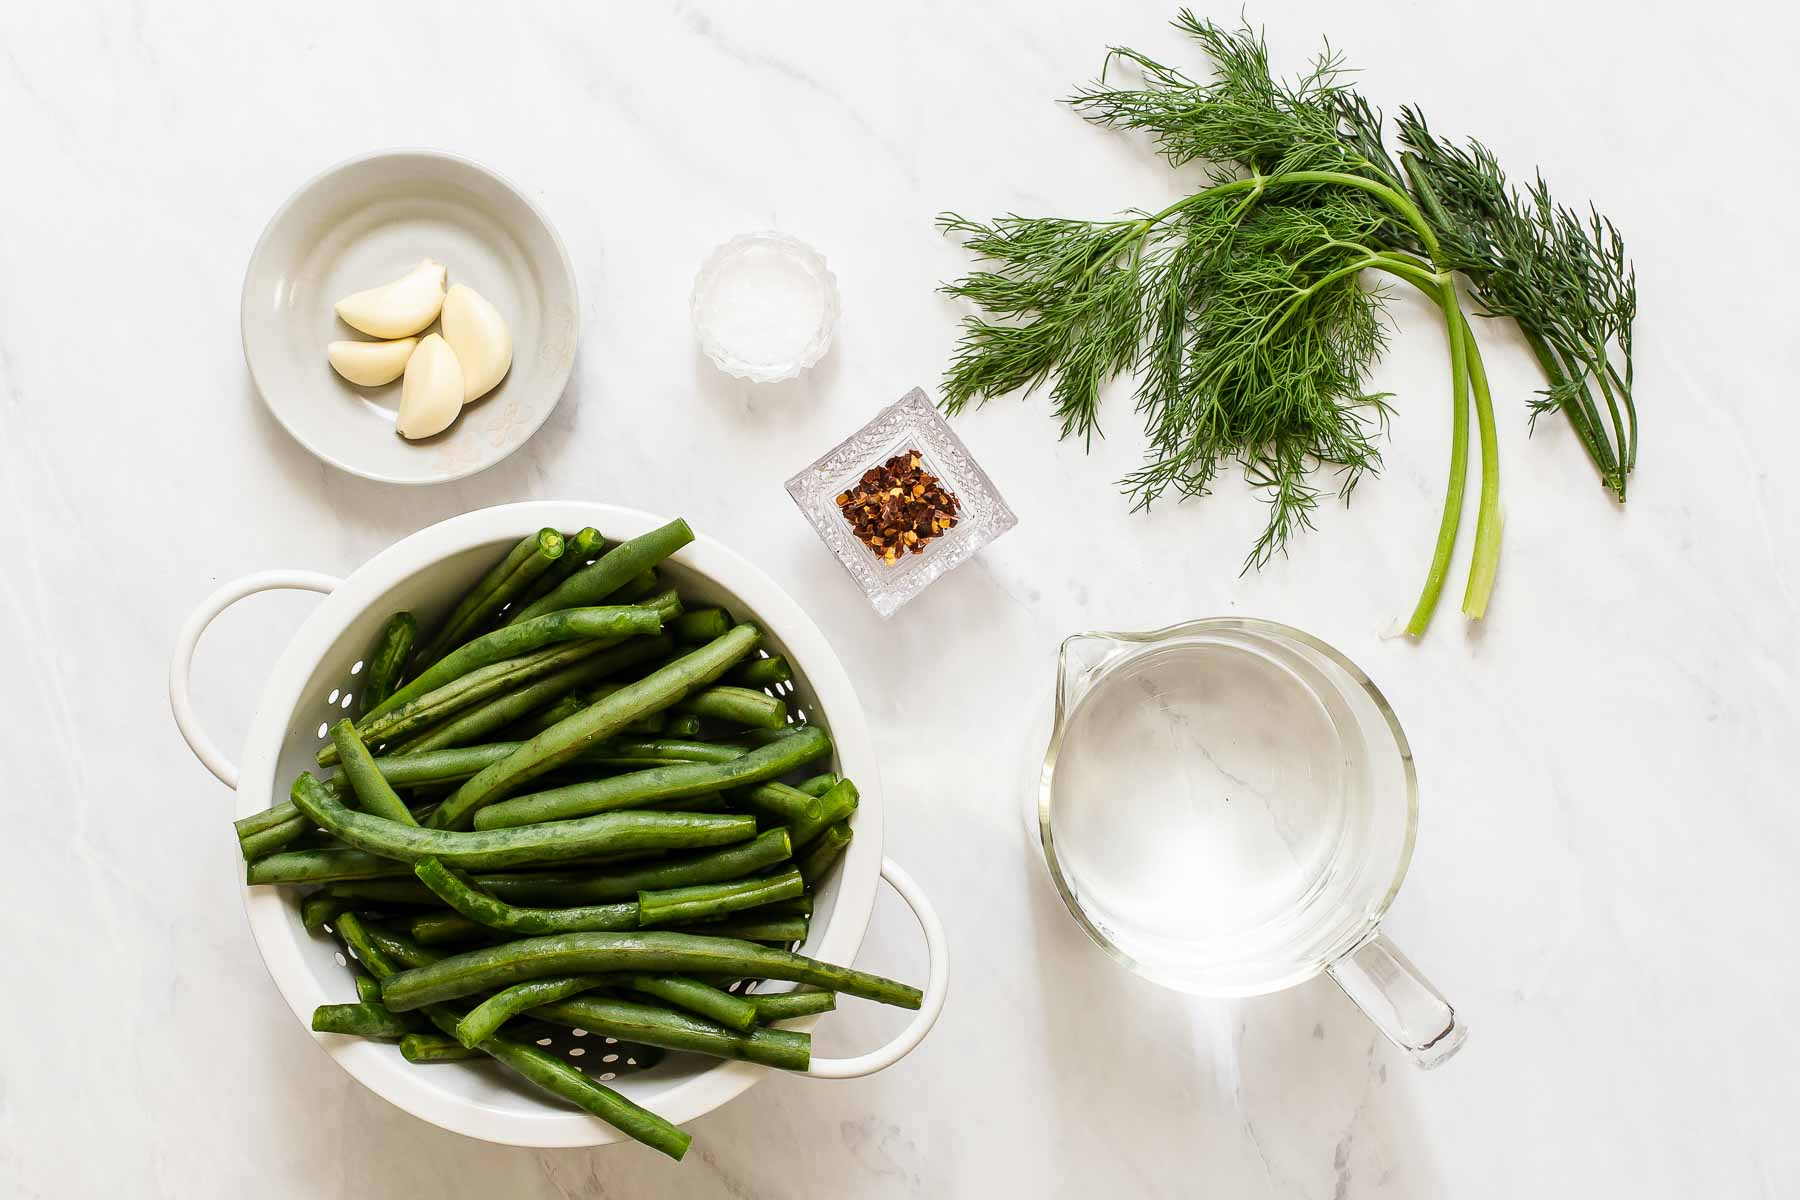 Ingredients for pickling green beans.